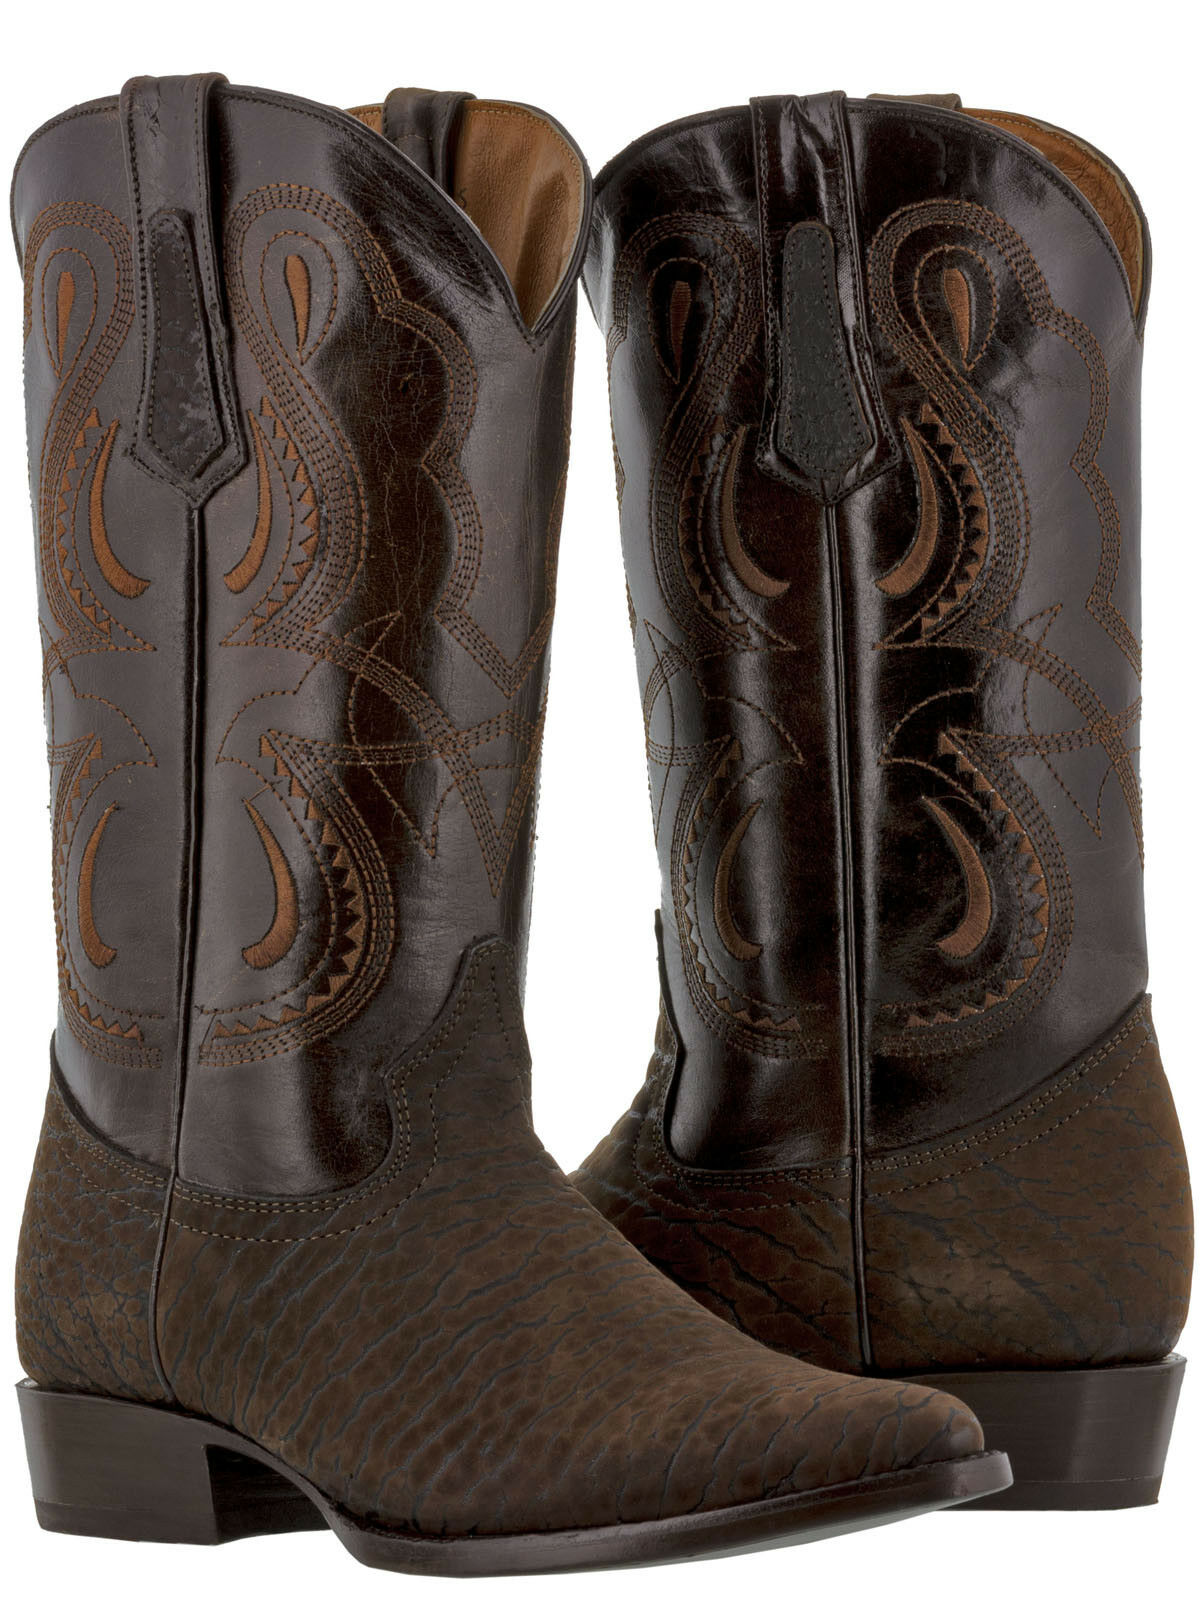 Mens Marroneeee Bison Pattern Leather Western Wear Rodeo Cowboy stivali J Toe